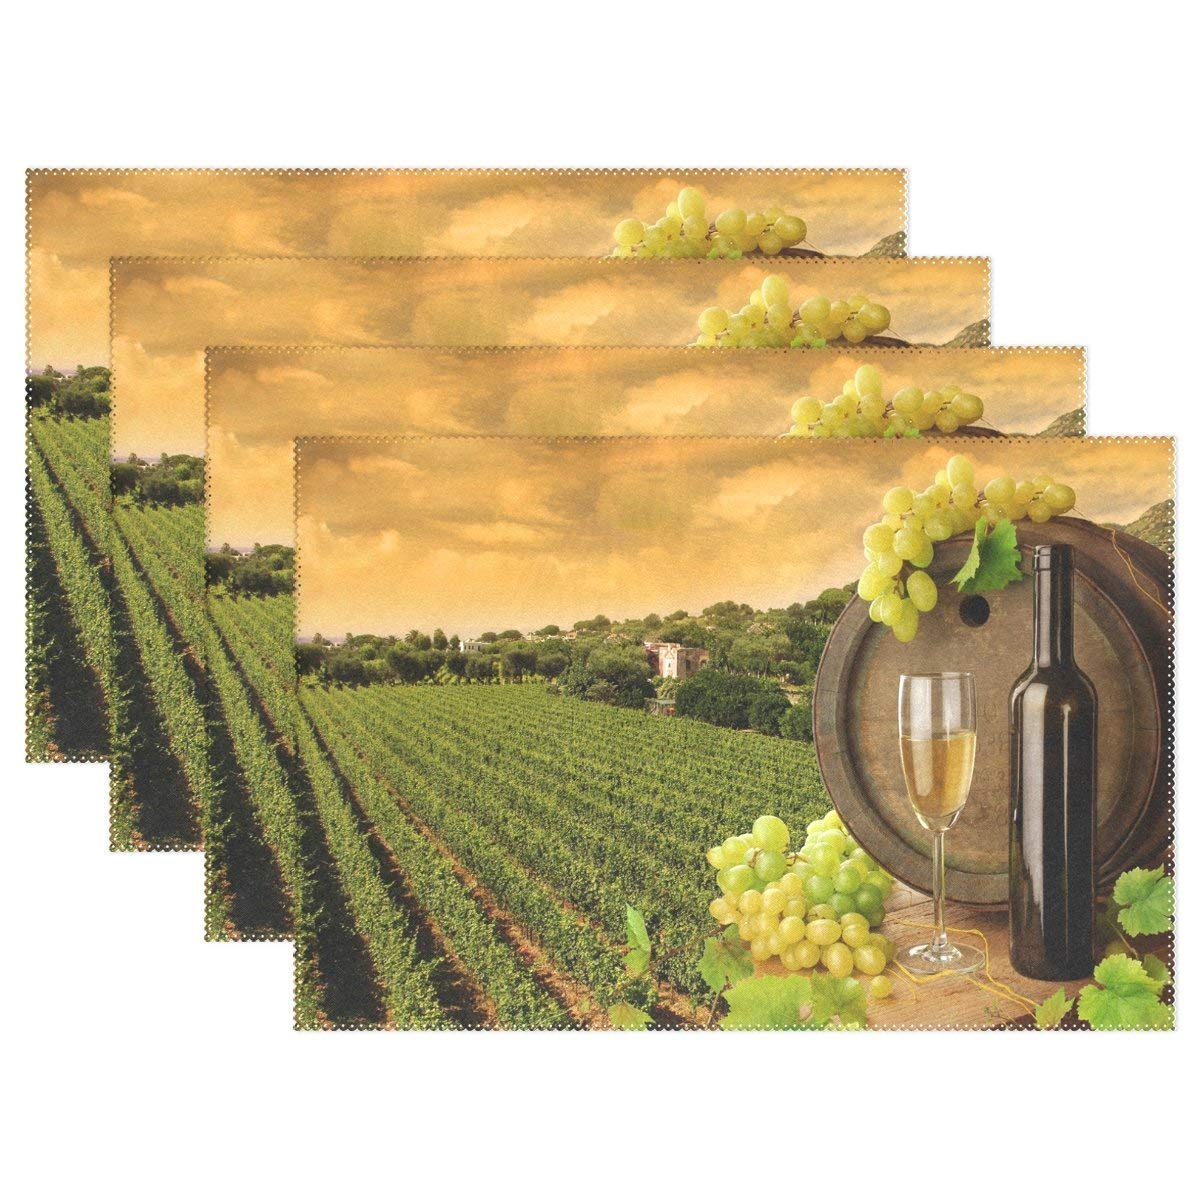 """Placemats - Set of 6,4 or 1 Table Mats - Creative Dining Insulation Heat Stain Resistant Anti-Skid Eat Mats for Kitchen Table and Dining Table with Vineyard Wine (12""""x 18"""")"""